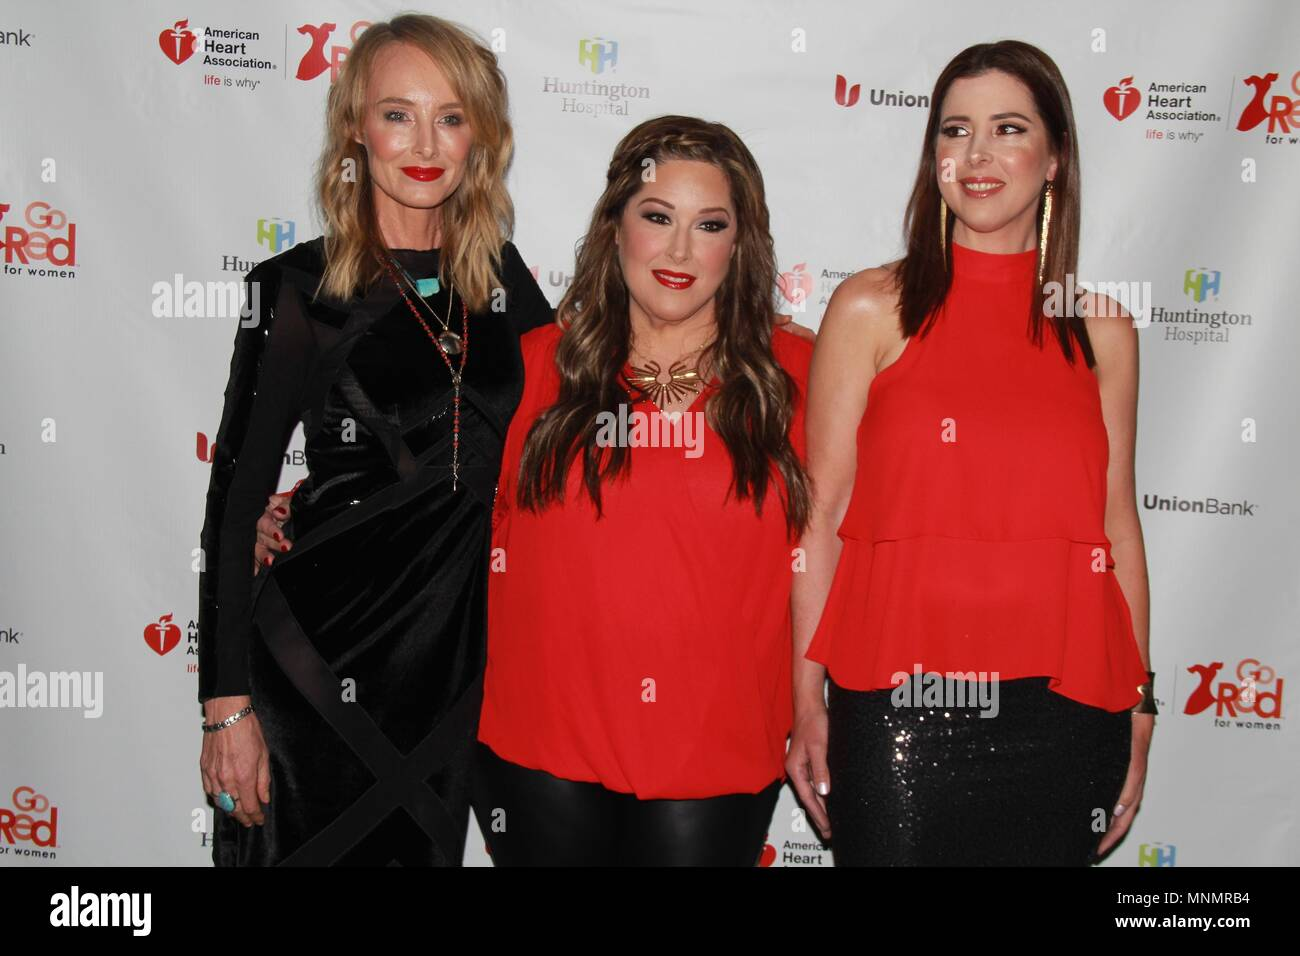 Hollywood, California, USA. 17th May, 2018. I15986CHW.The American Heart Association Presents The 3rd Annual ROCK THE RED Music Benefit .Avalon Hollywood, Los Angeles, CA USA.05/17/2018.CHYNNA PHILLIPS, CARNIE WILSON AND WENDY WILSON . © Clinton H.Wallace/Photomundo International/ Photos Inc Credit: Clinton Wallace/Globe Photos/ZUMA Wire/Alamy Live News - Stock Image